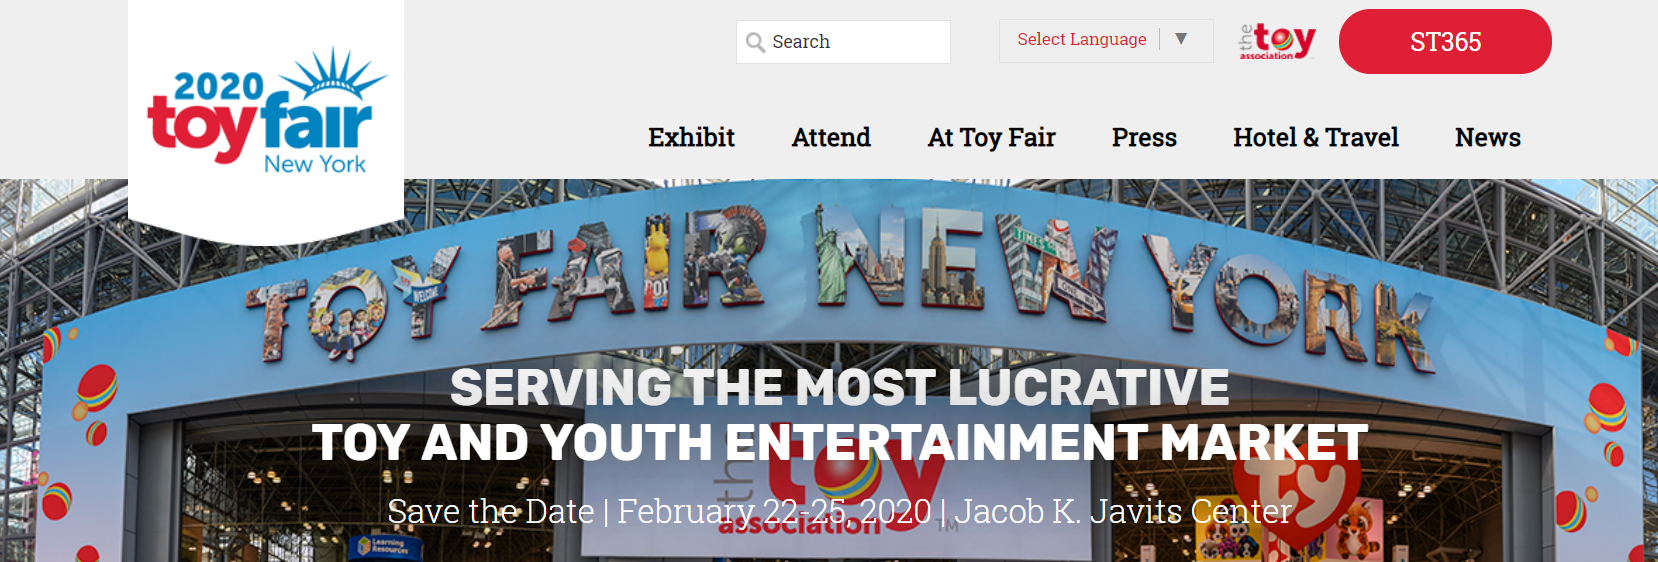 New York Toy Fair 2020.Toy Fair Ny 2020 Scheduled For February 22 25 Jedi News